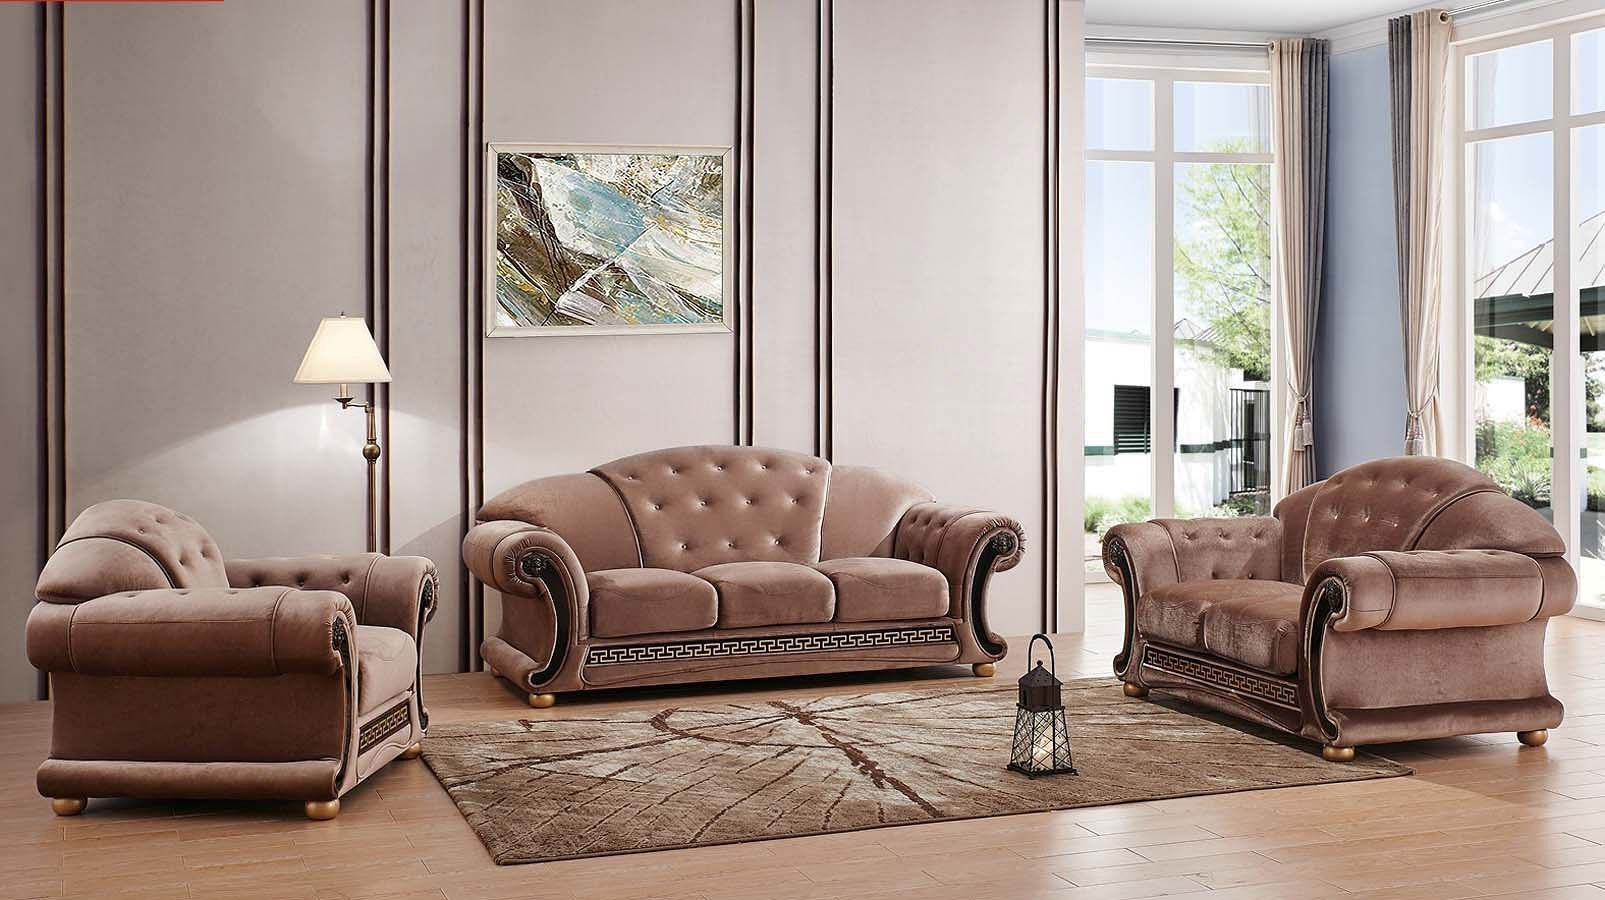 Esf apolo living room set microfiber apolo collection - Microfiber living room furniture sets ...